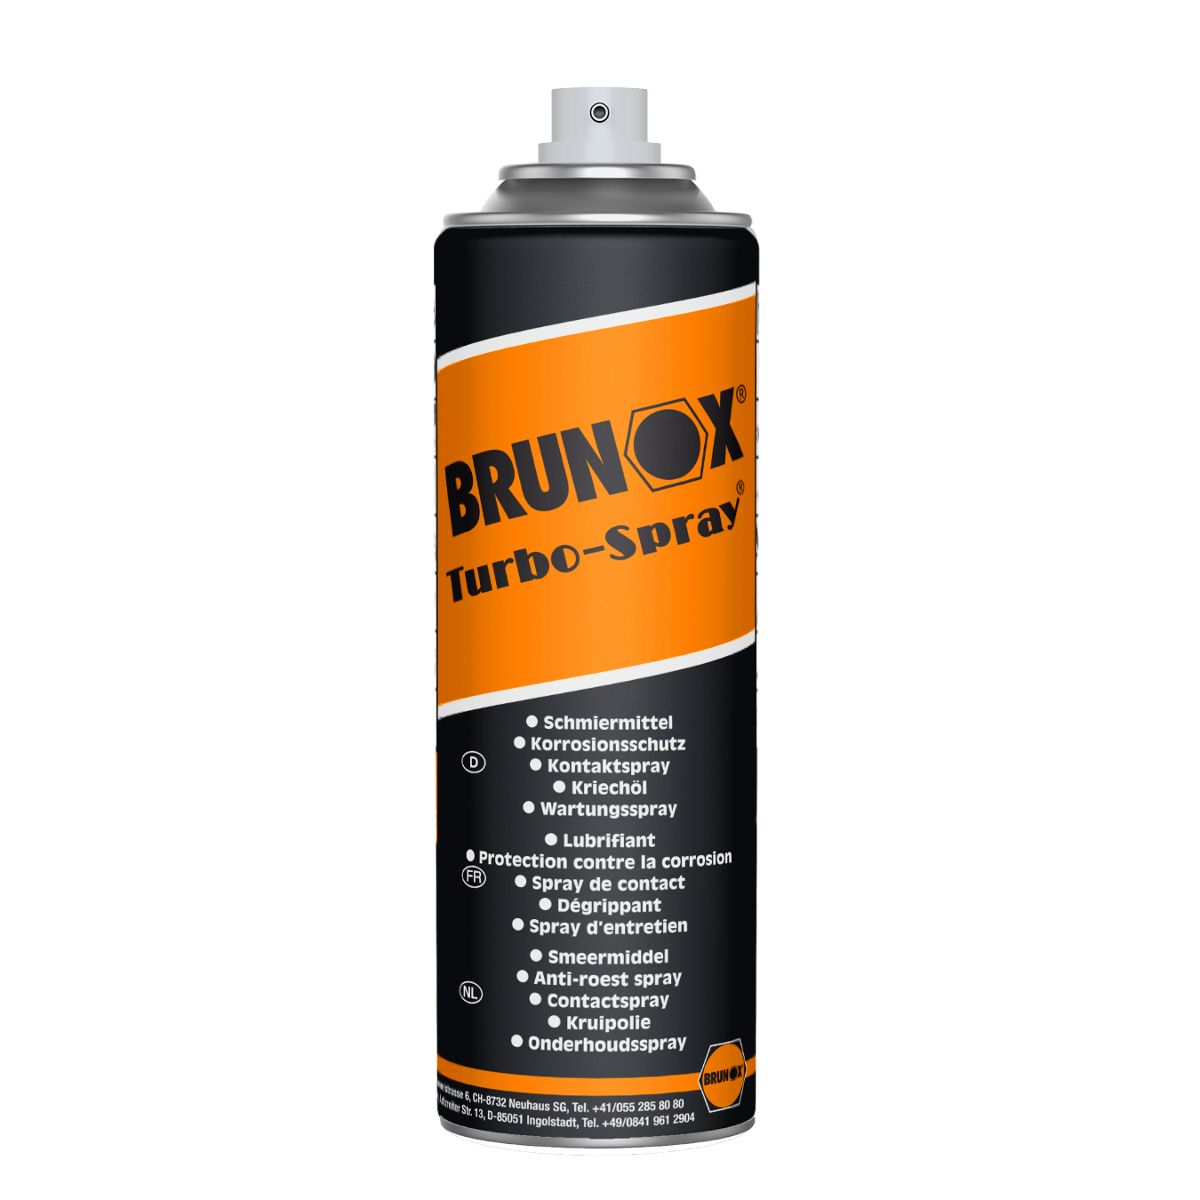 Turbo Spray lubricant